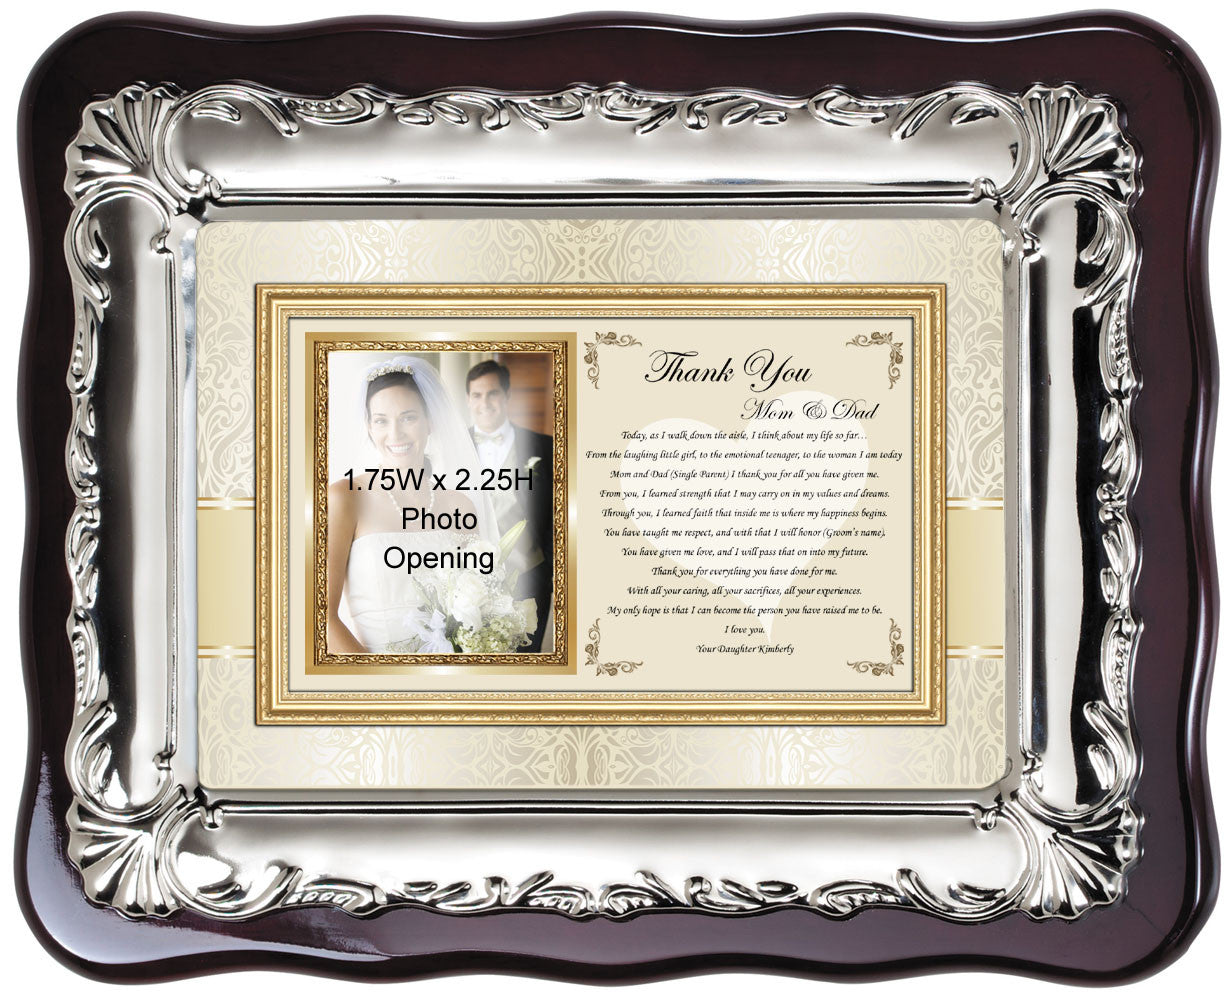 Wedding Thank You Gift Personalized Picture Frame Parents From Bride